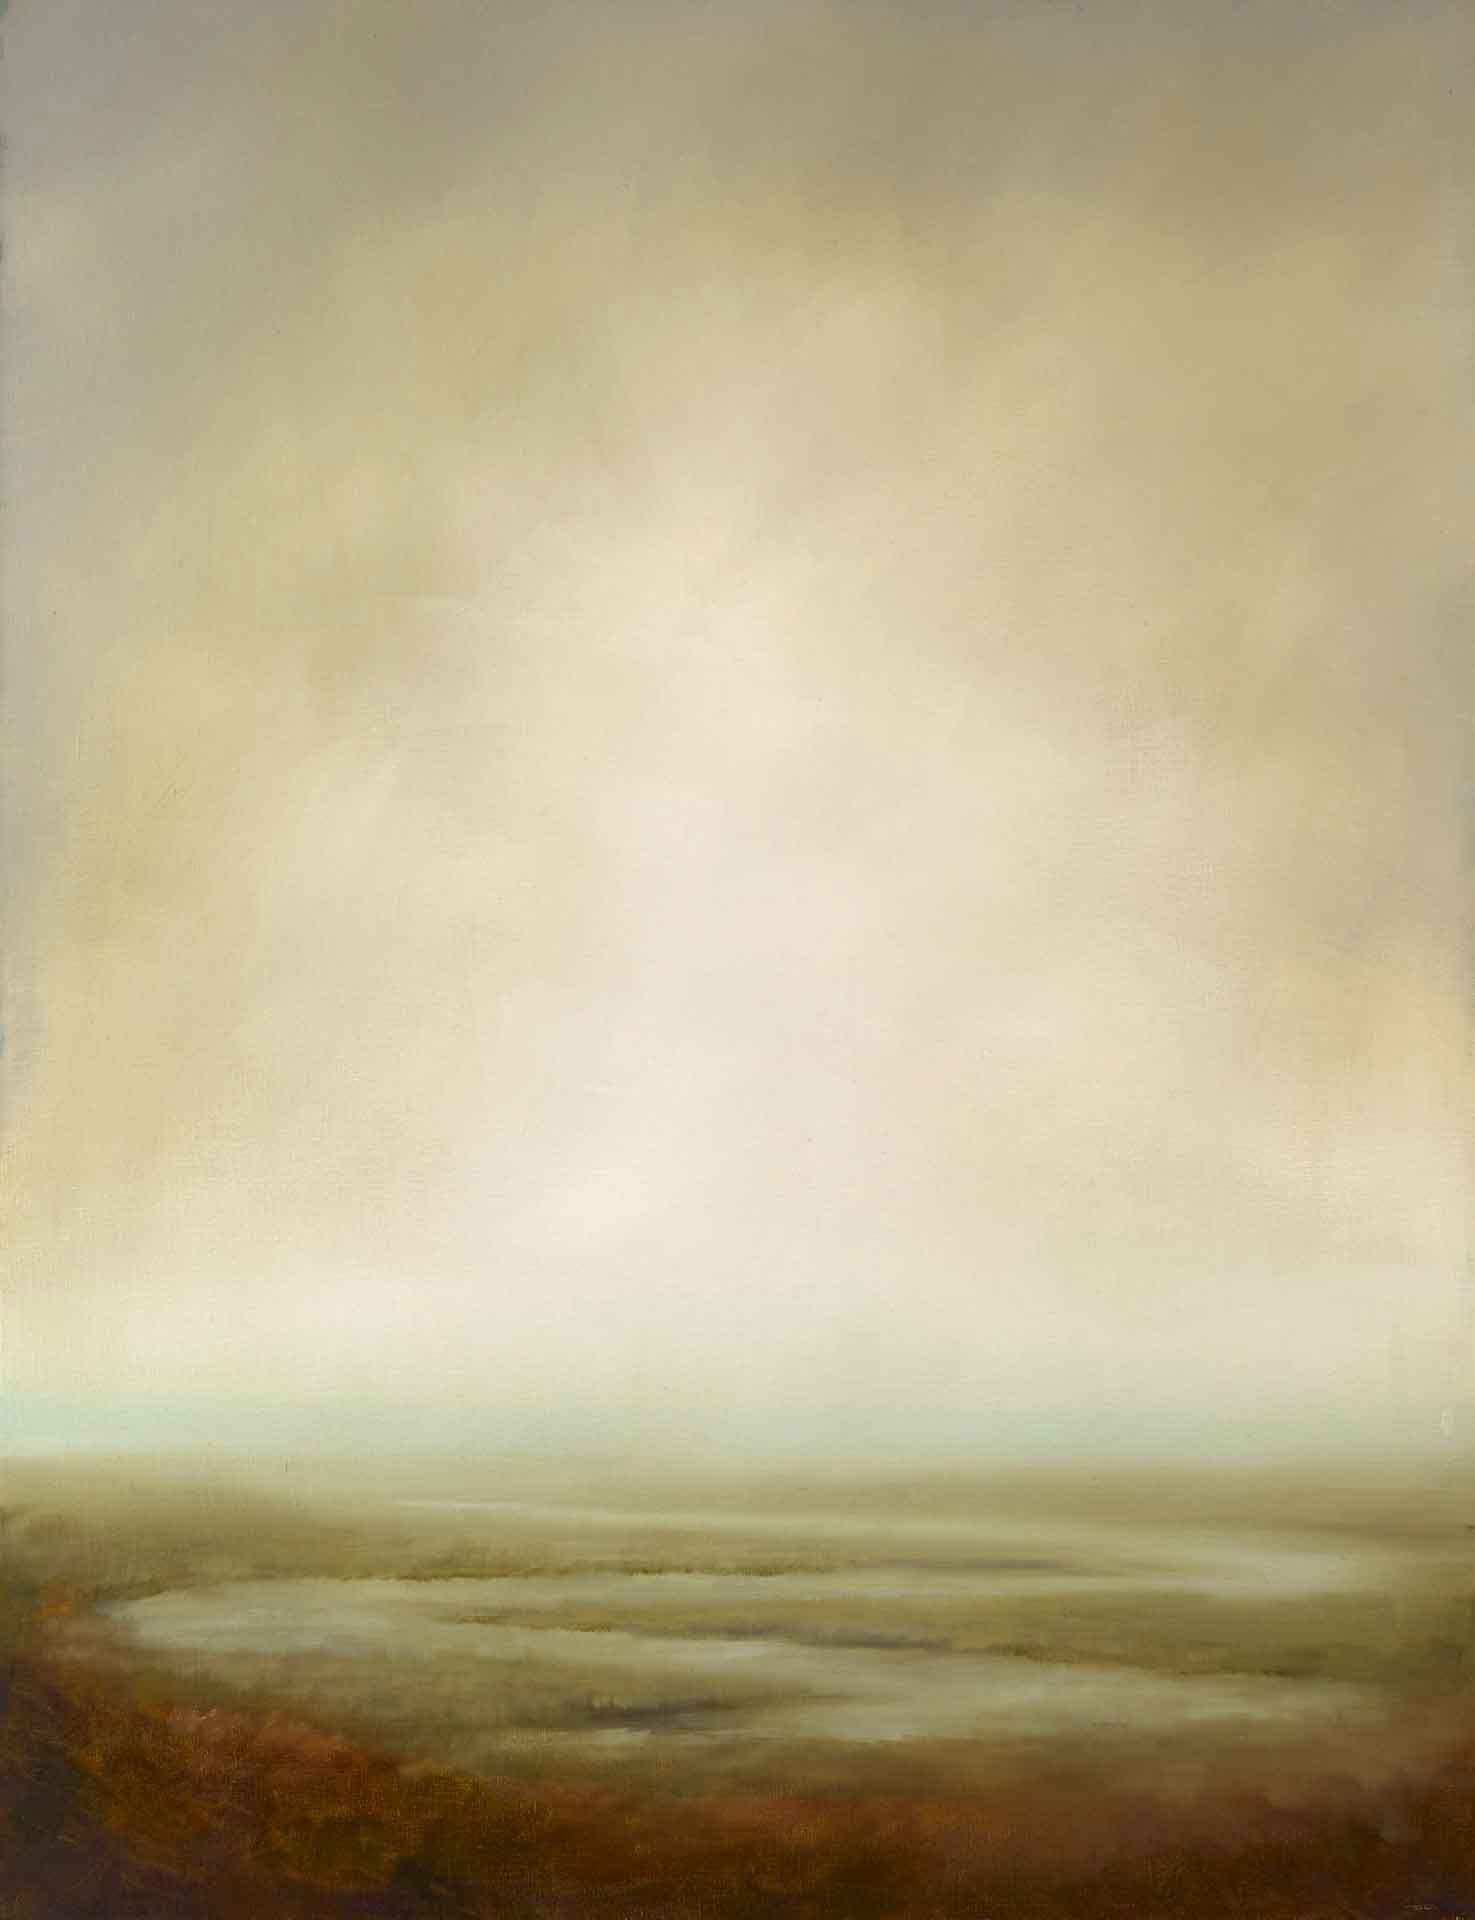 Bright Misty Light Over The Sea Off South Uist In The Western Isles - Landscape Painting By Victoria Orr Ewing